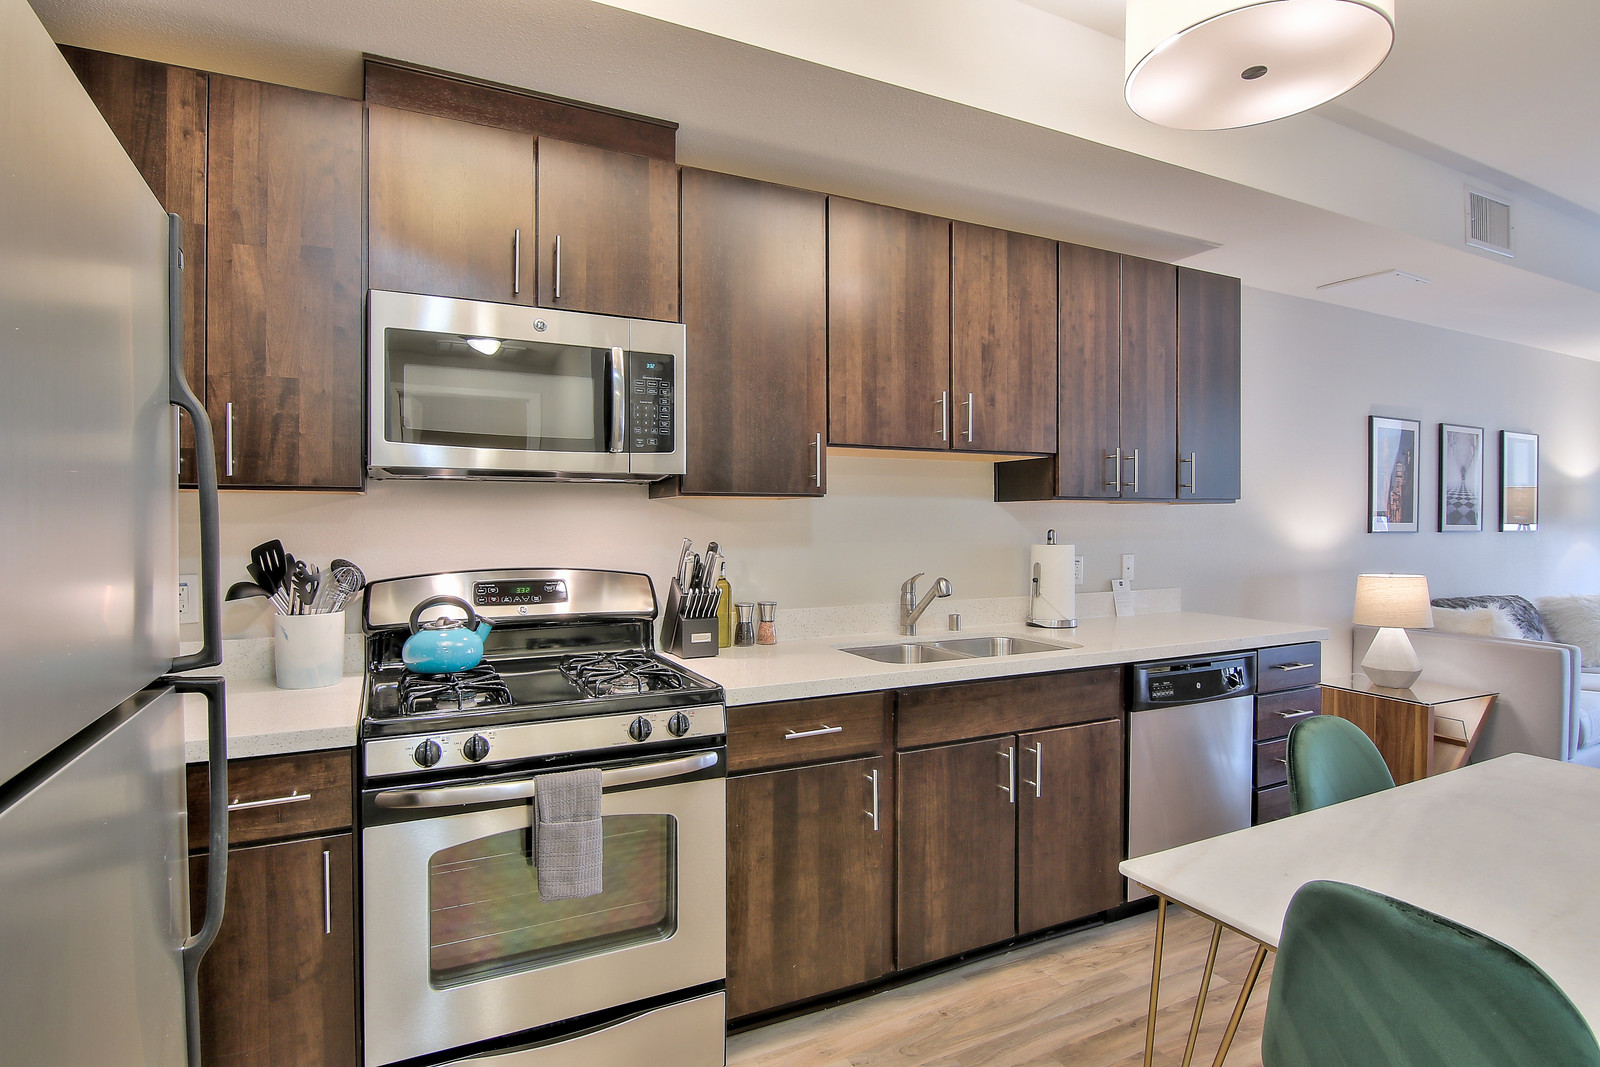 Kitchen at The Village Residences